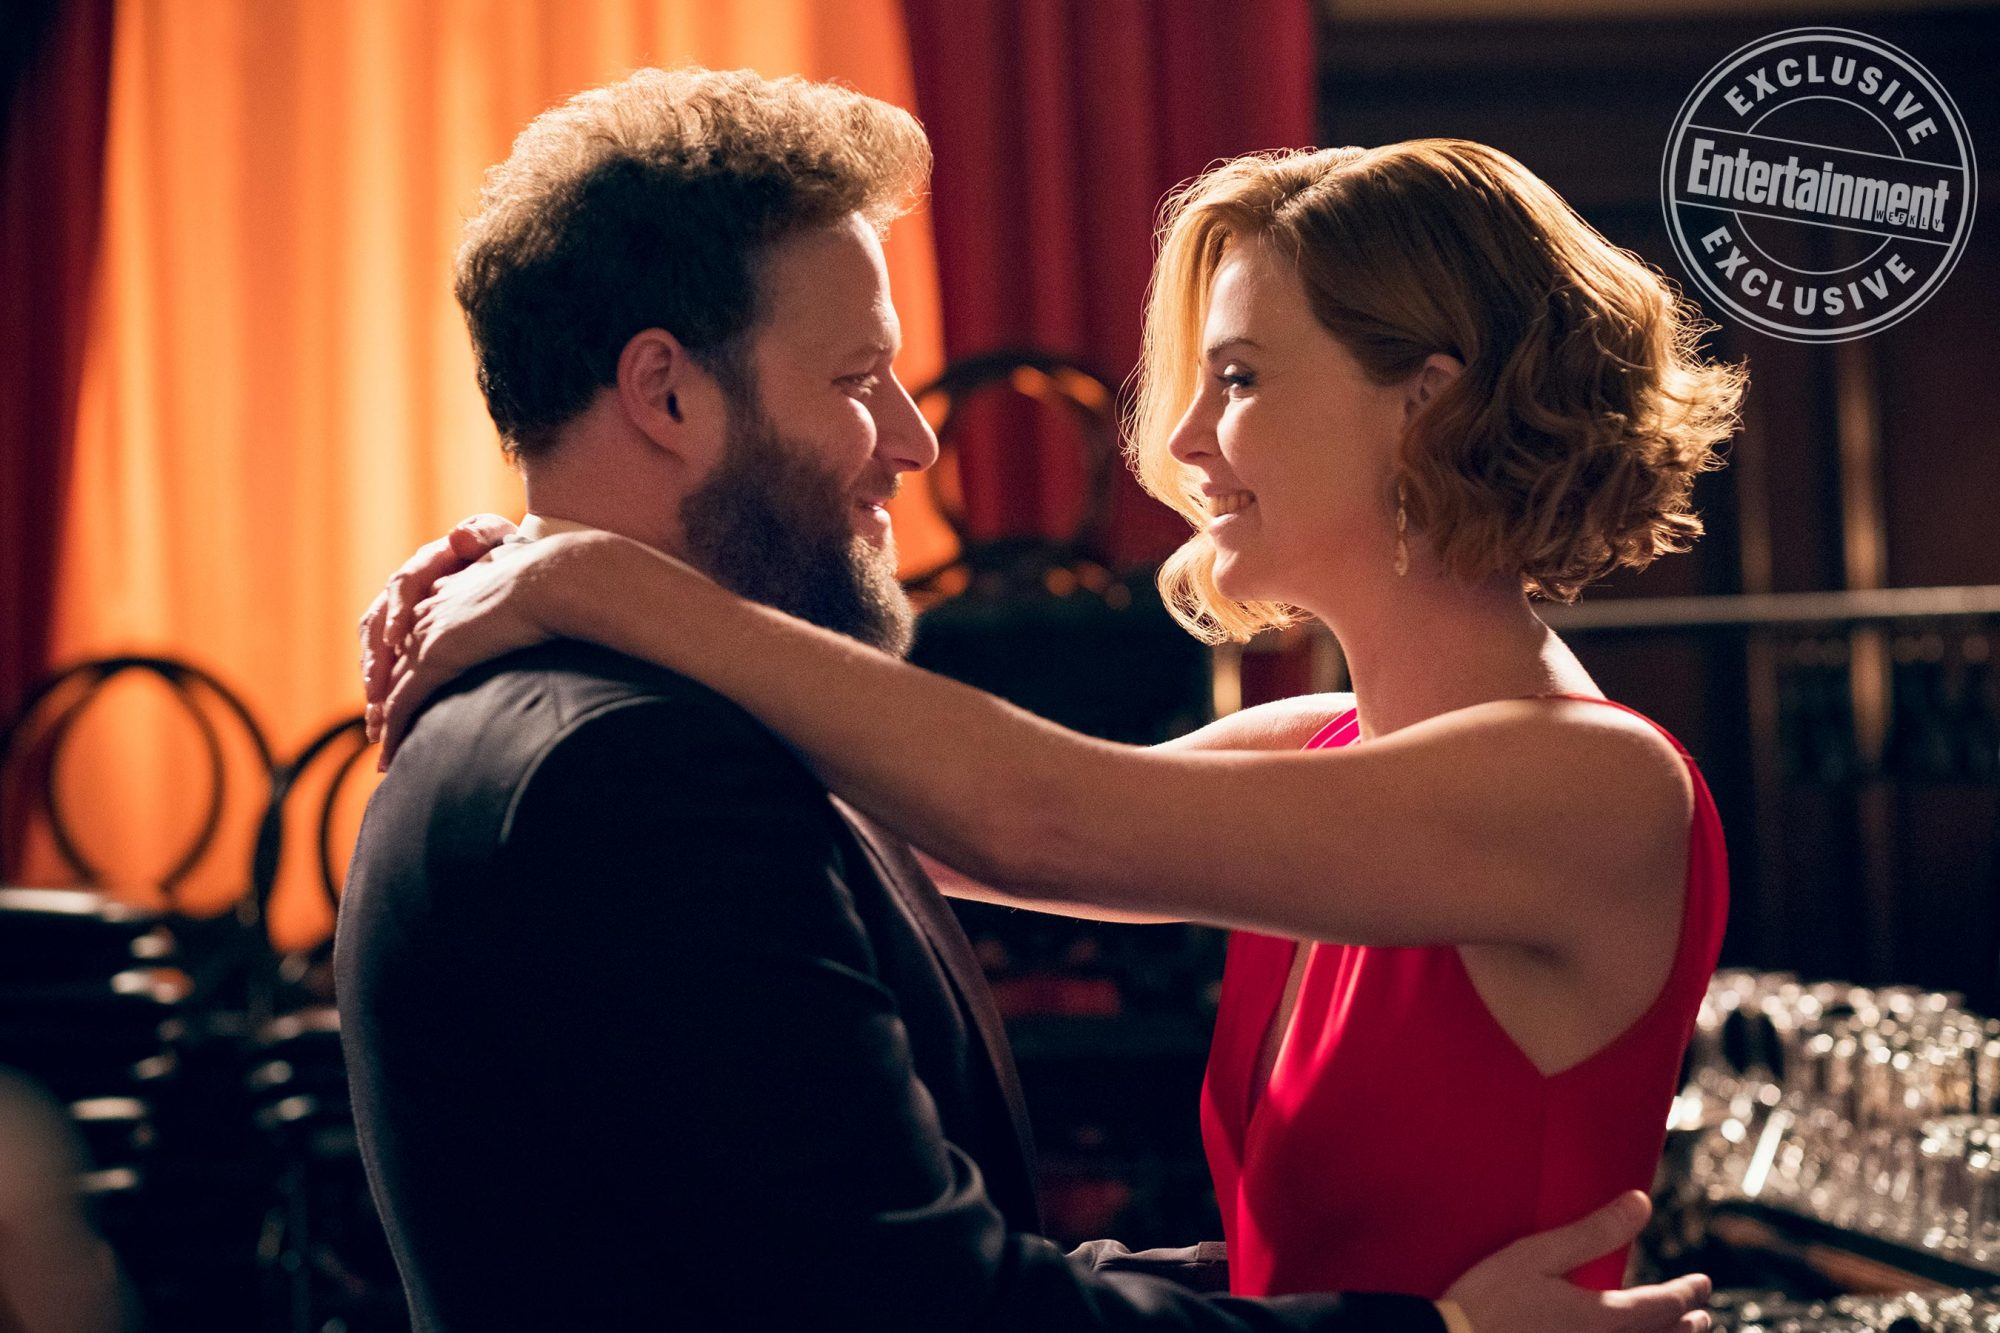 LONG SHOTFred Flarsky (Seth Rogen) and Charlotte Field (Charlize Theron)